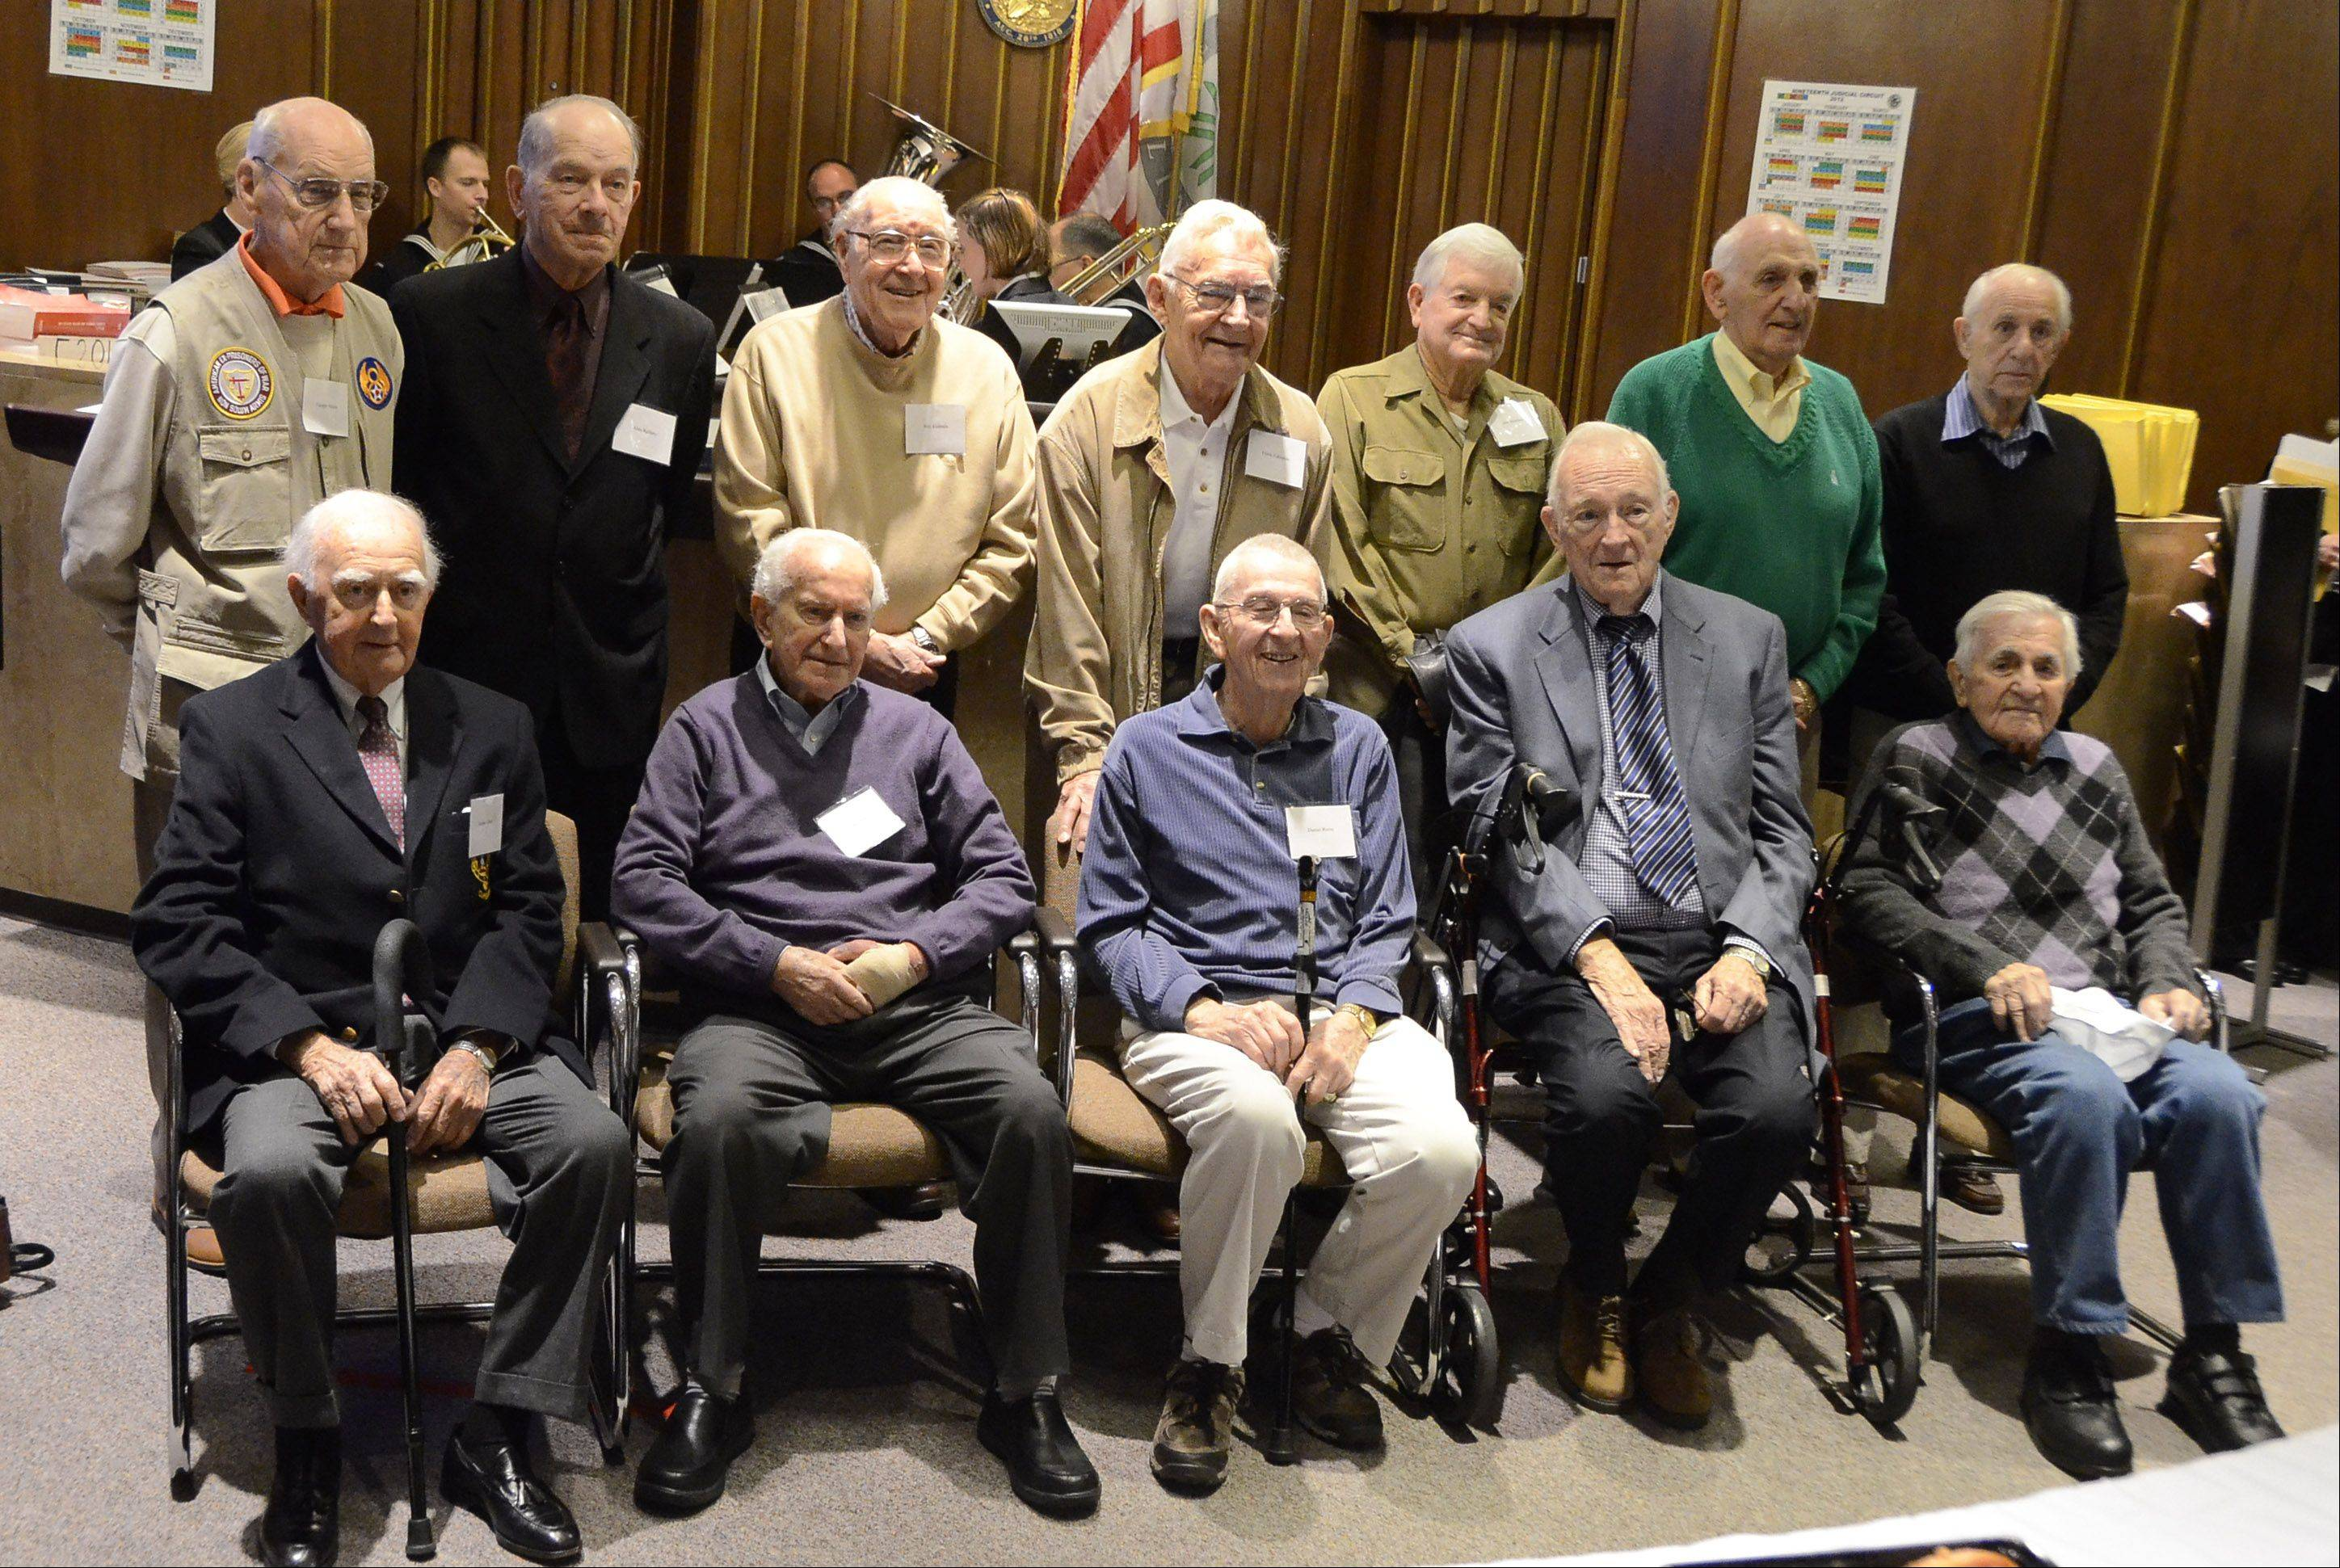 Combat veterans get together for a photograph Friday morning at the Lake County courthouse in Waukegan. Members of the legal community met with the veterans to help record their stories for the Library of Congress.